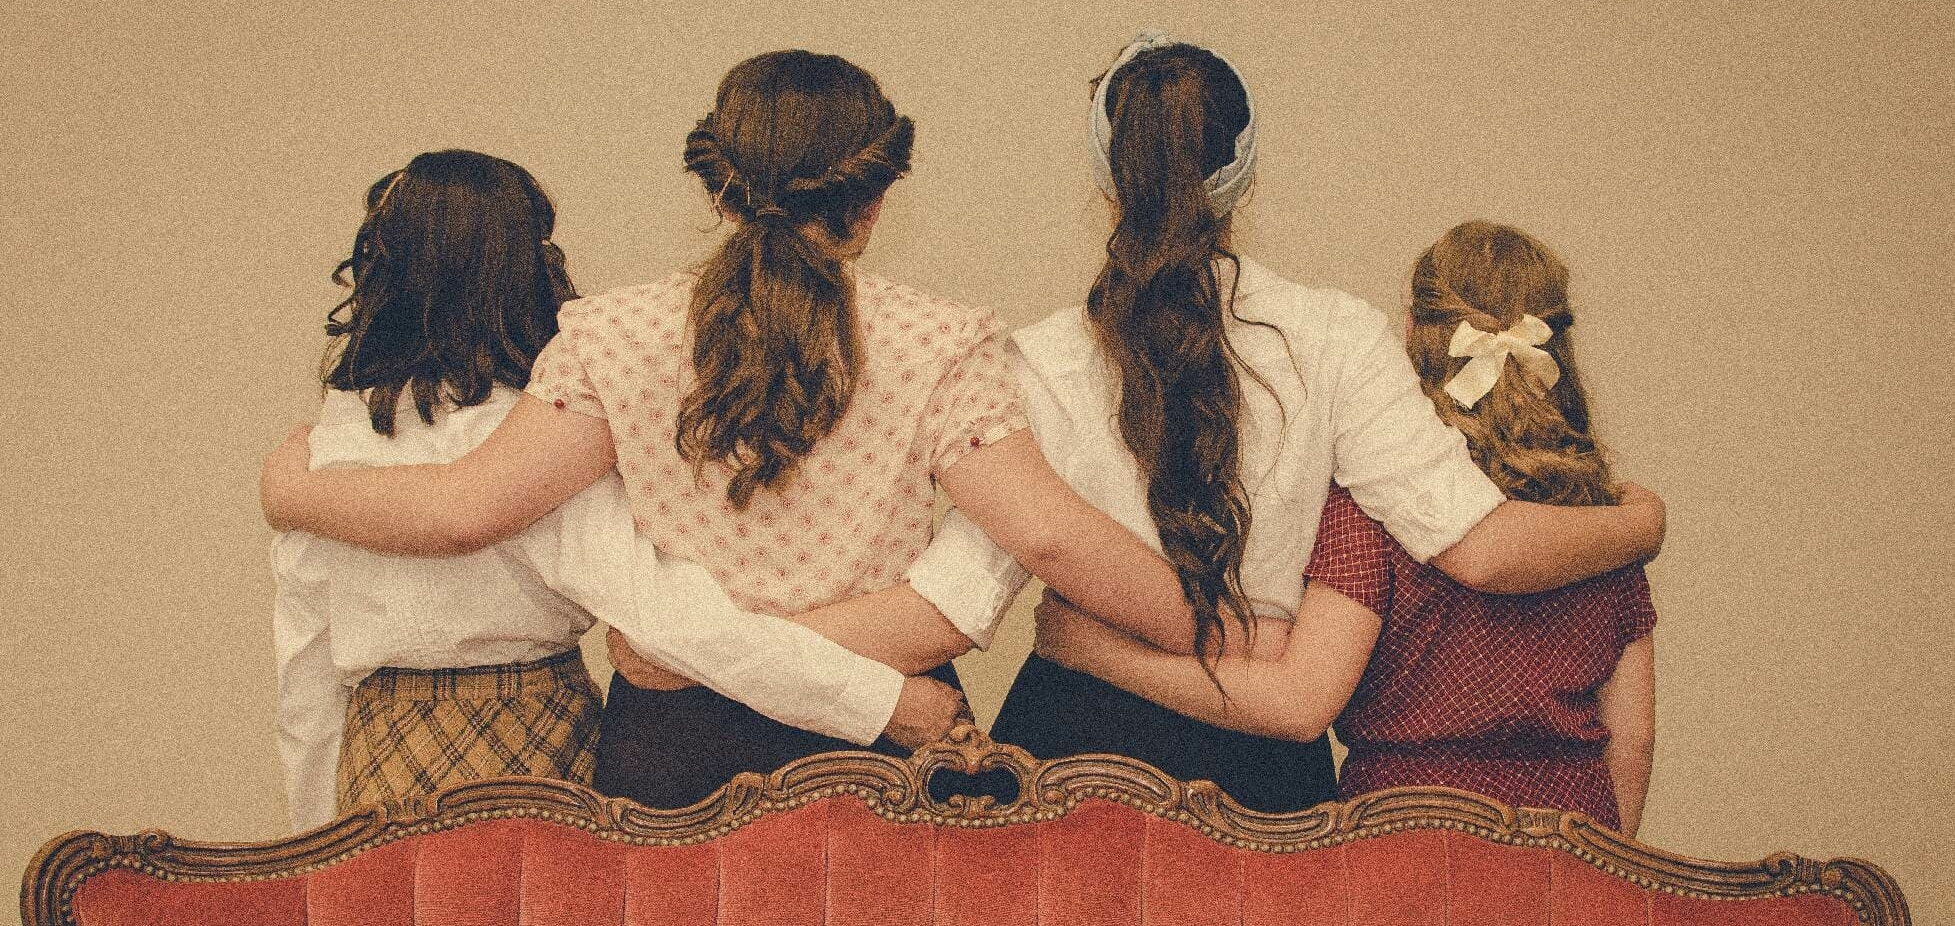 Click for more information about our spring show: Little Women!